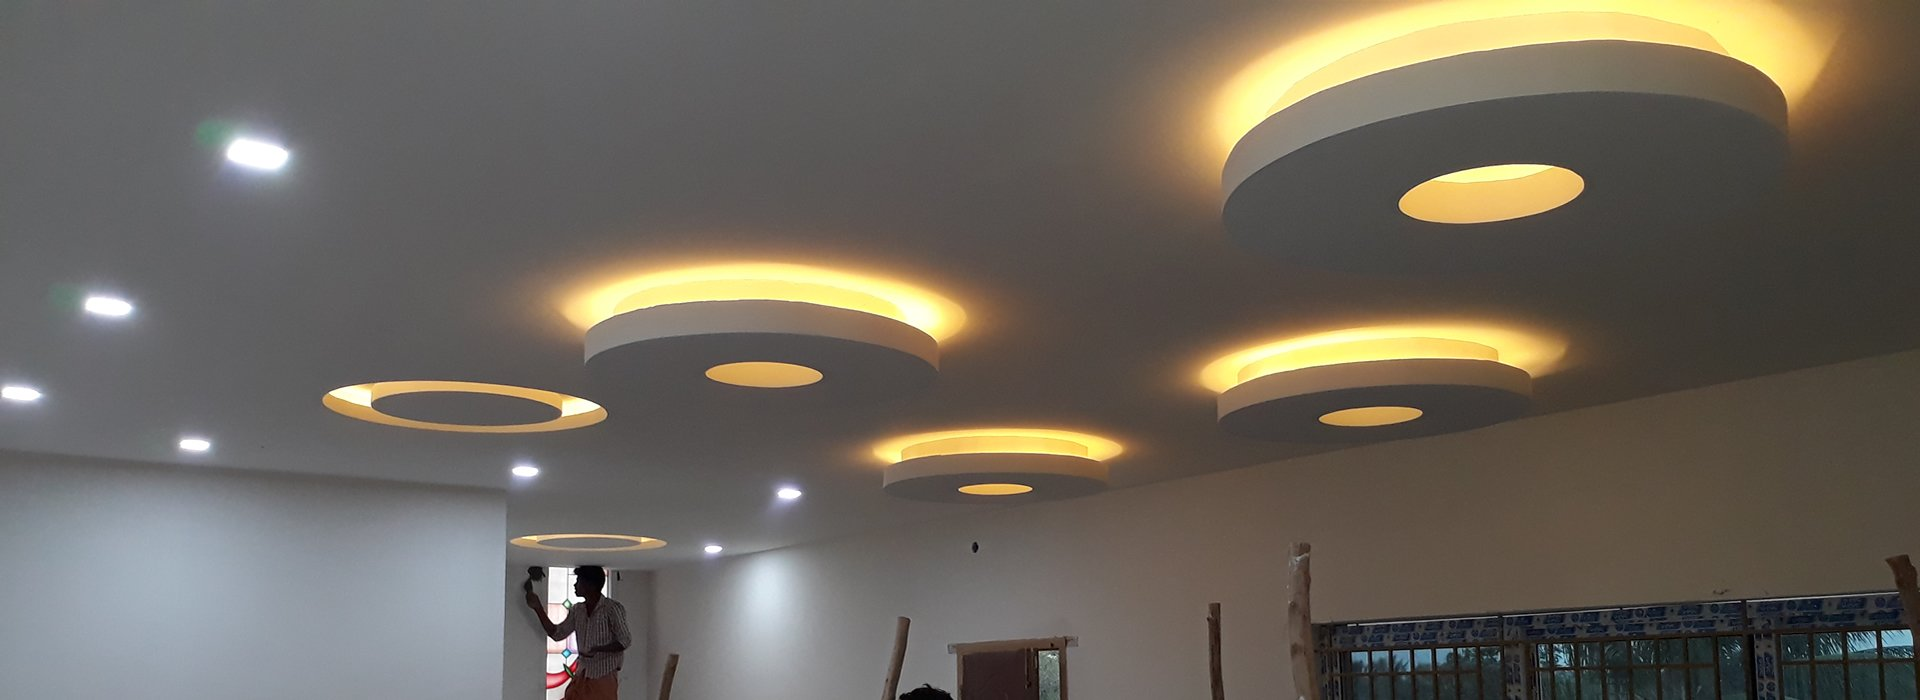 False Ceiling Contractors In Coimbatore Sqft Rs 60